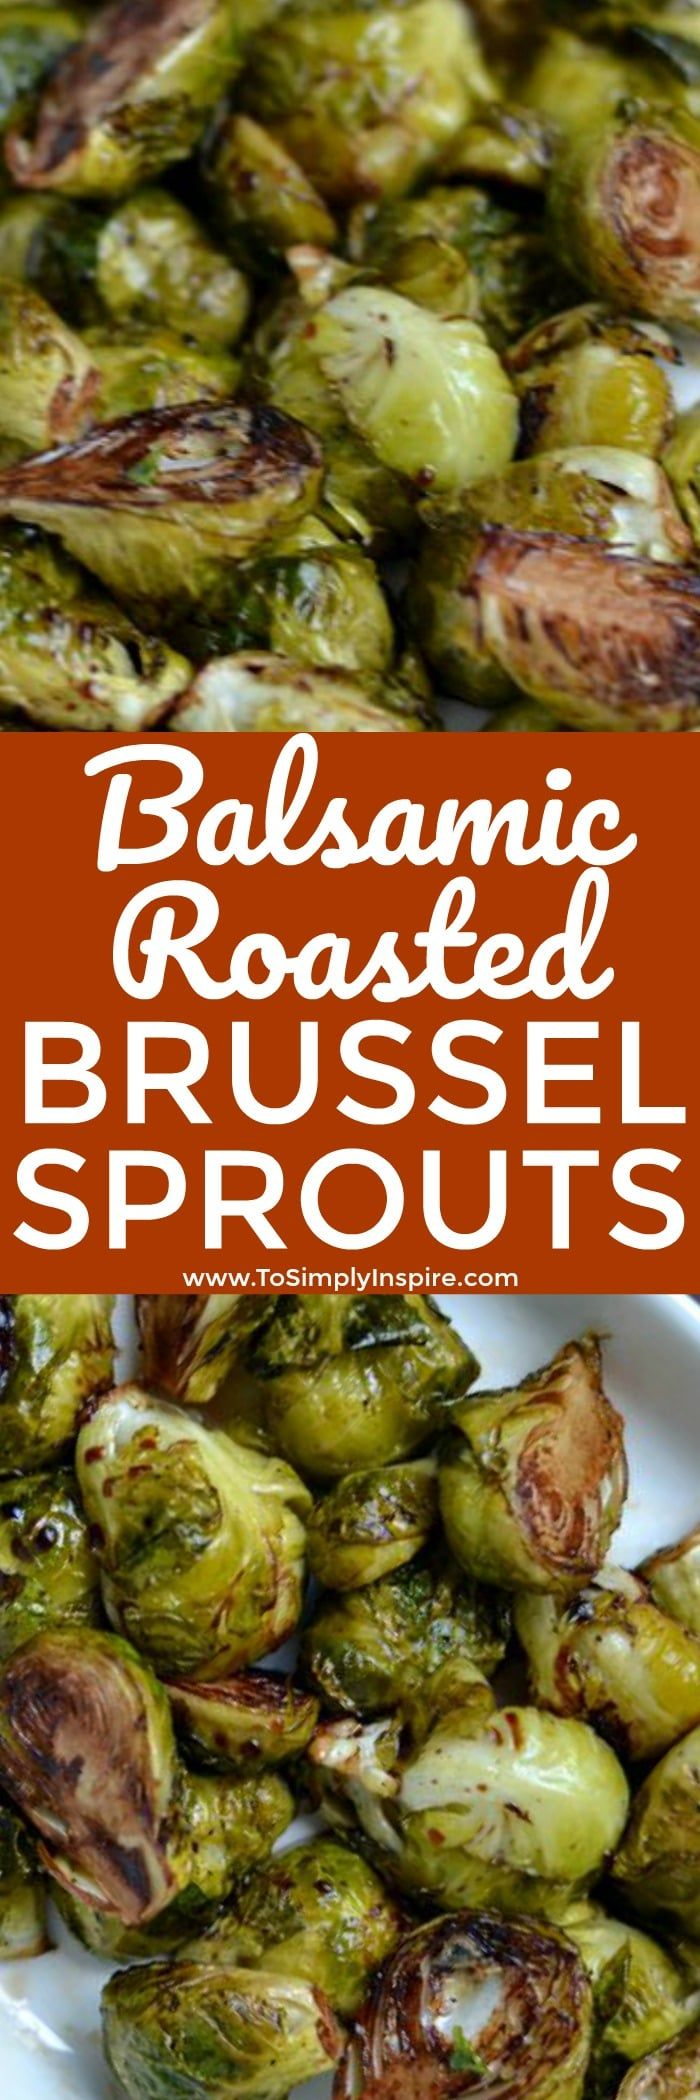 These Balsamic Roasted Brussel Sprouts will change the way you think about this veggie. They are loaded with sweet nutty flavor for a wonderful, extremely healthy side dish! | www.ToSimplyInspire.com #brusselsprouts #healthy #easy